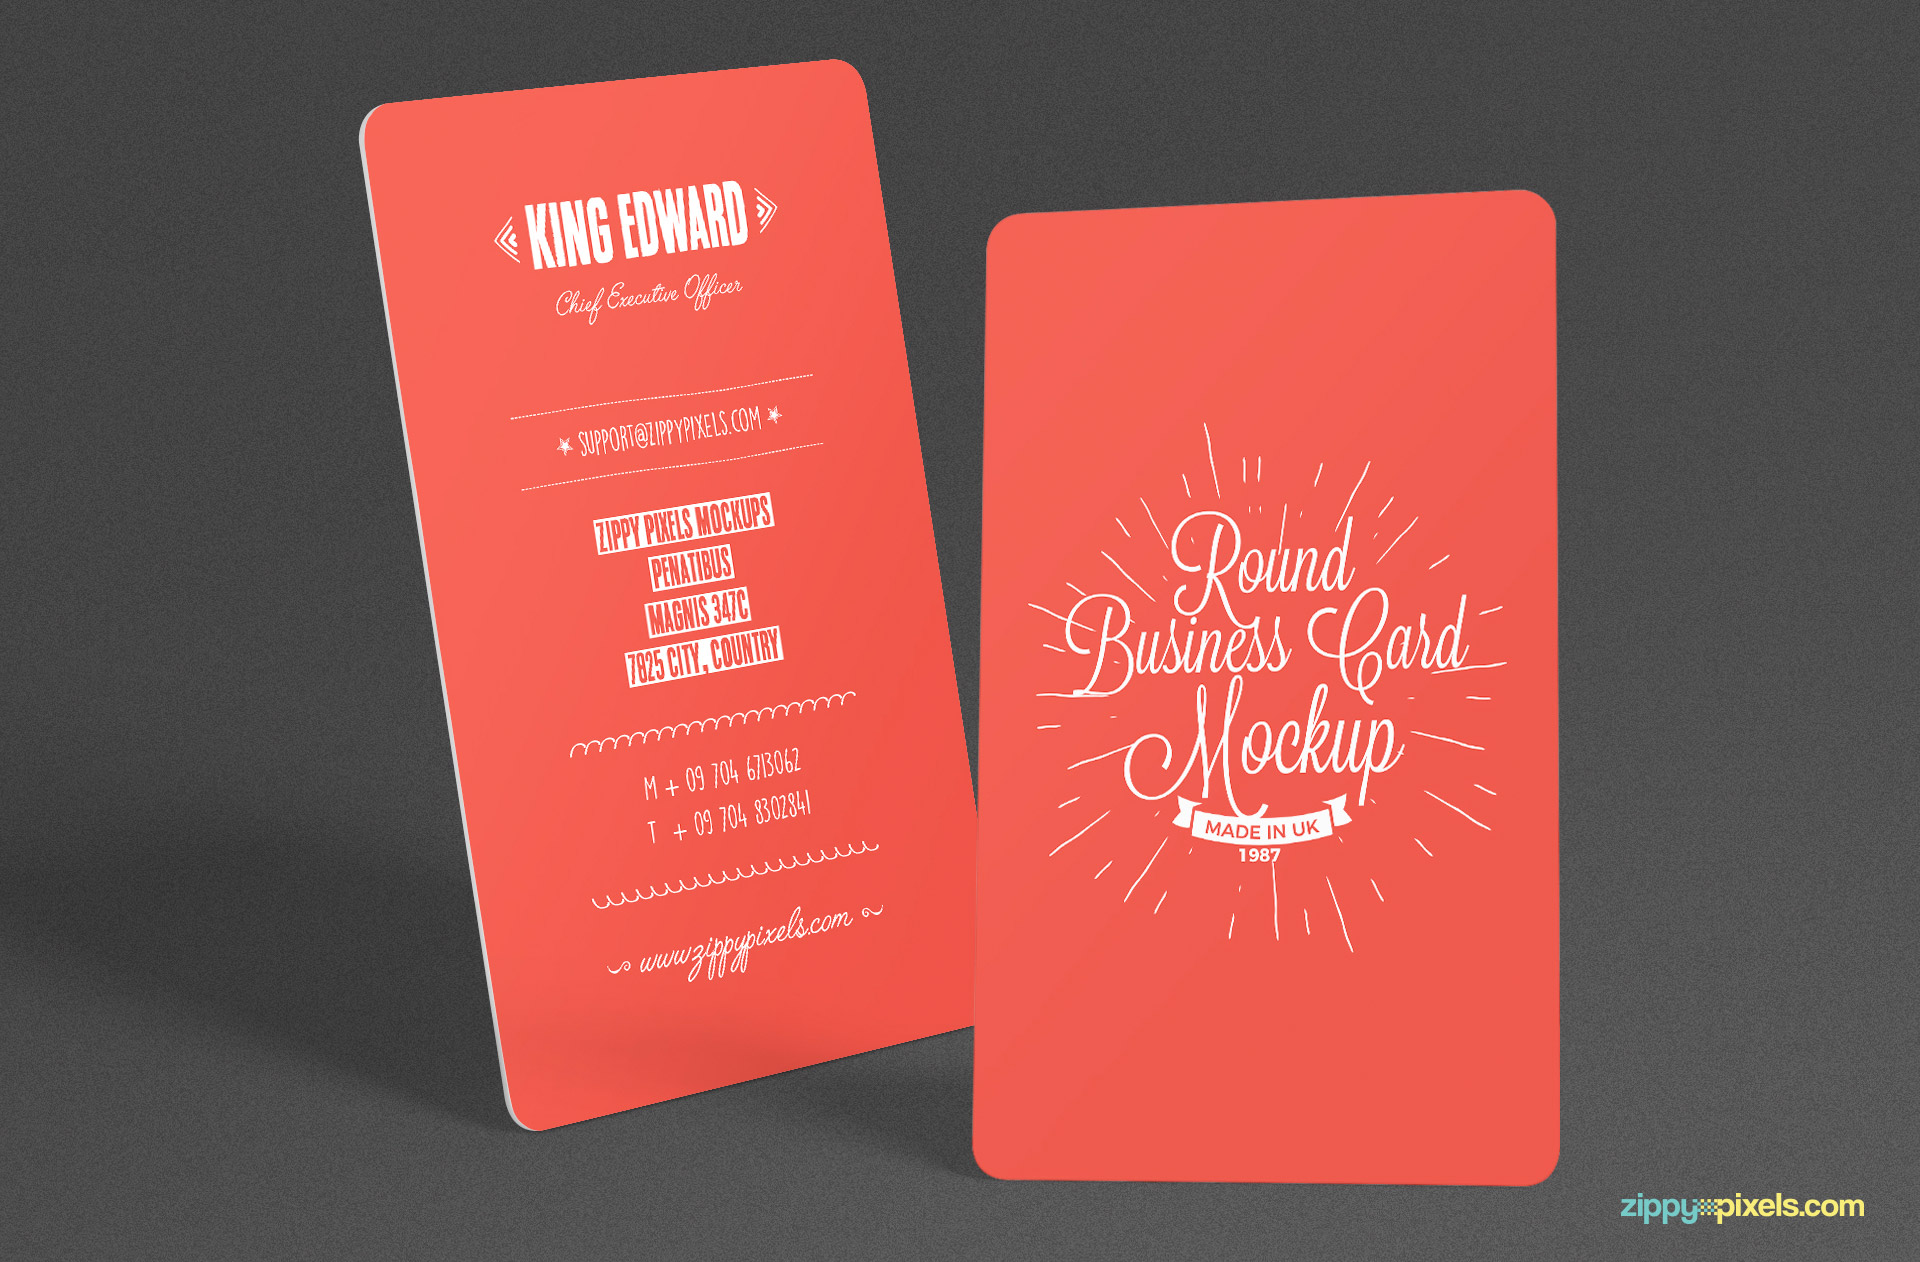 Free high res professional and corporate business card mockup